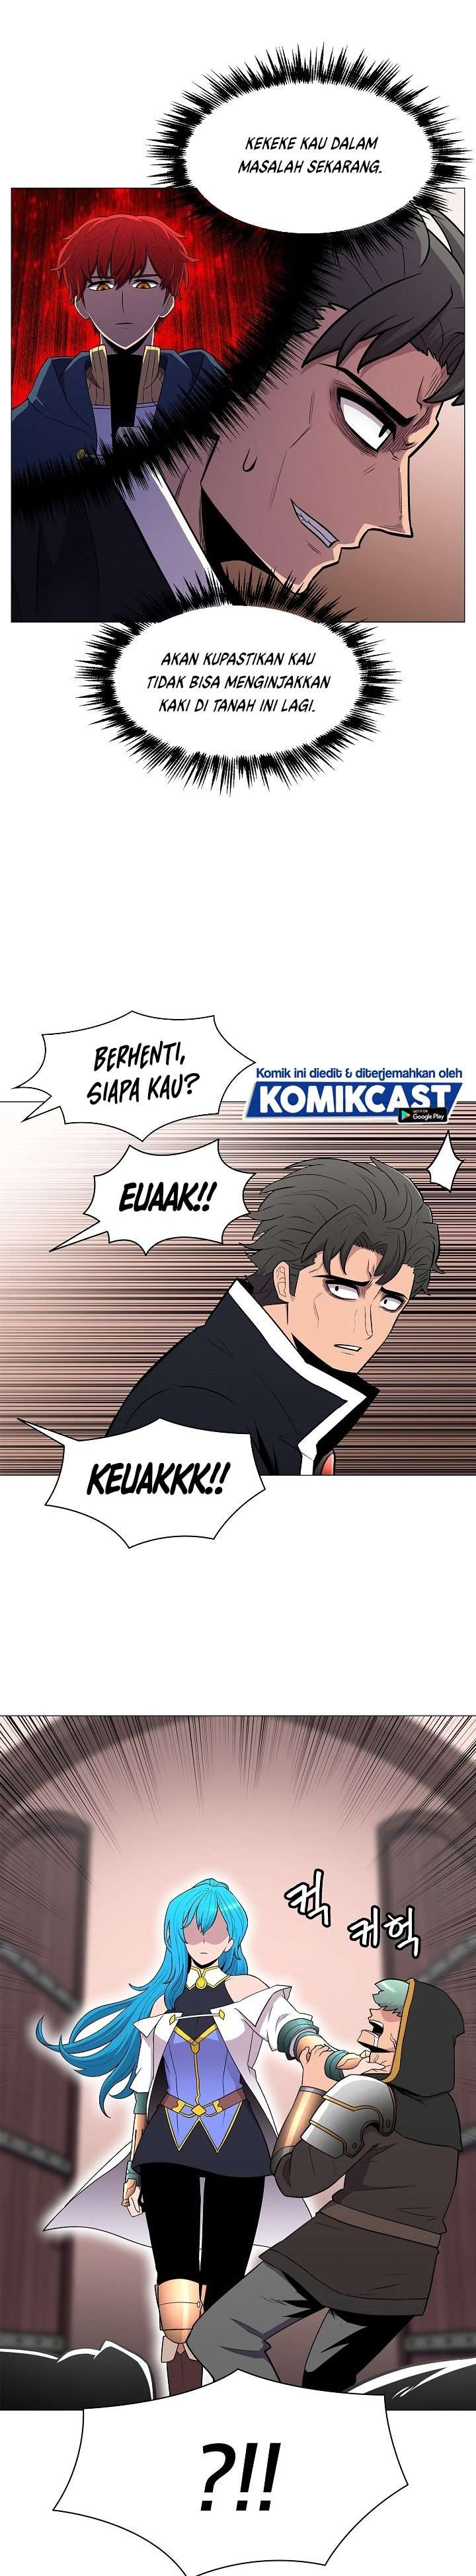 Updater Chapter 25 Bahasa Indonesia page 47